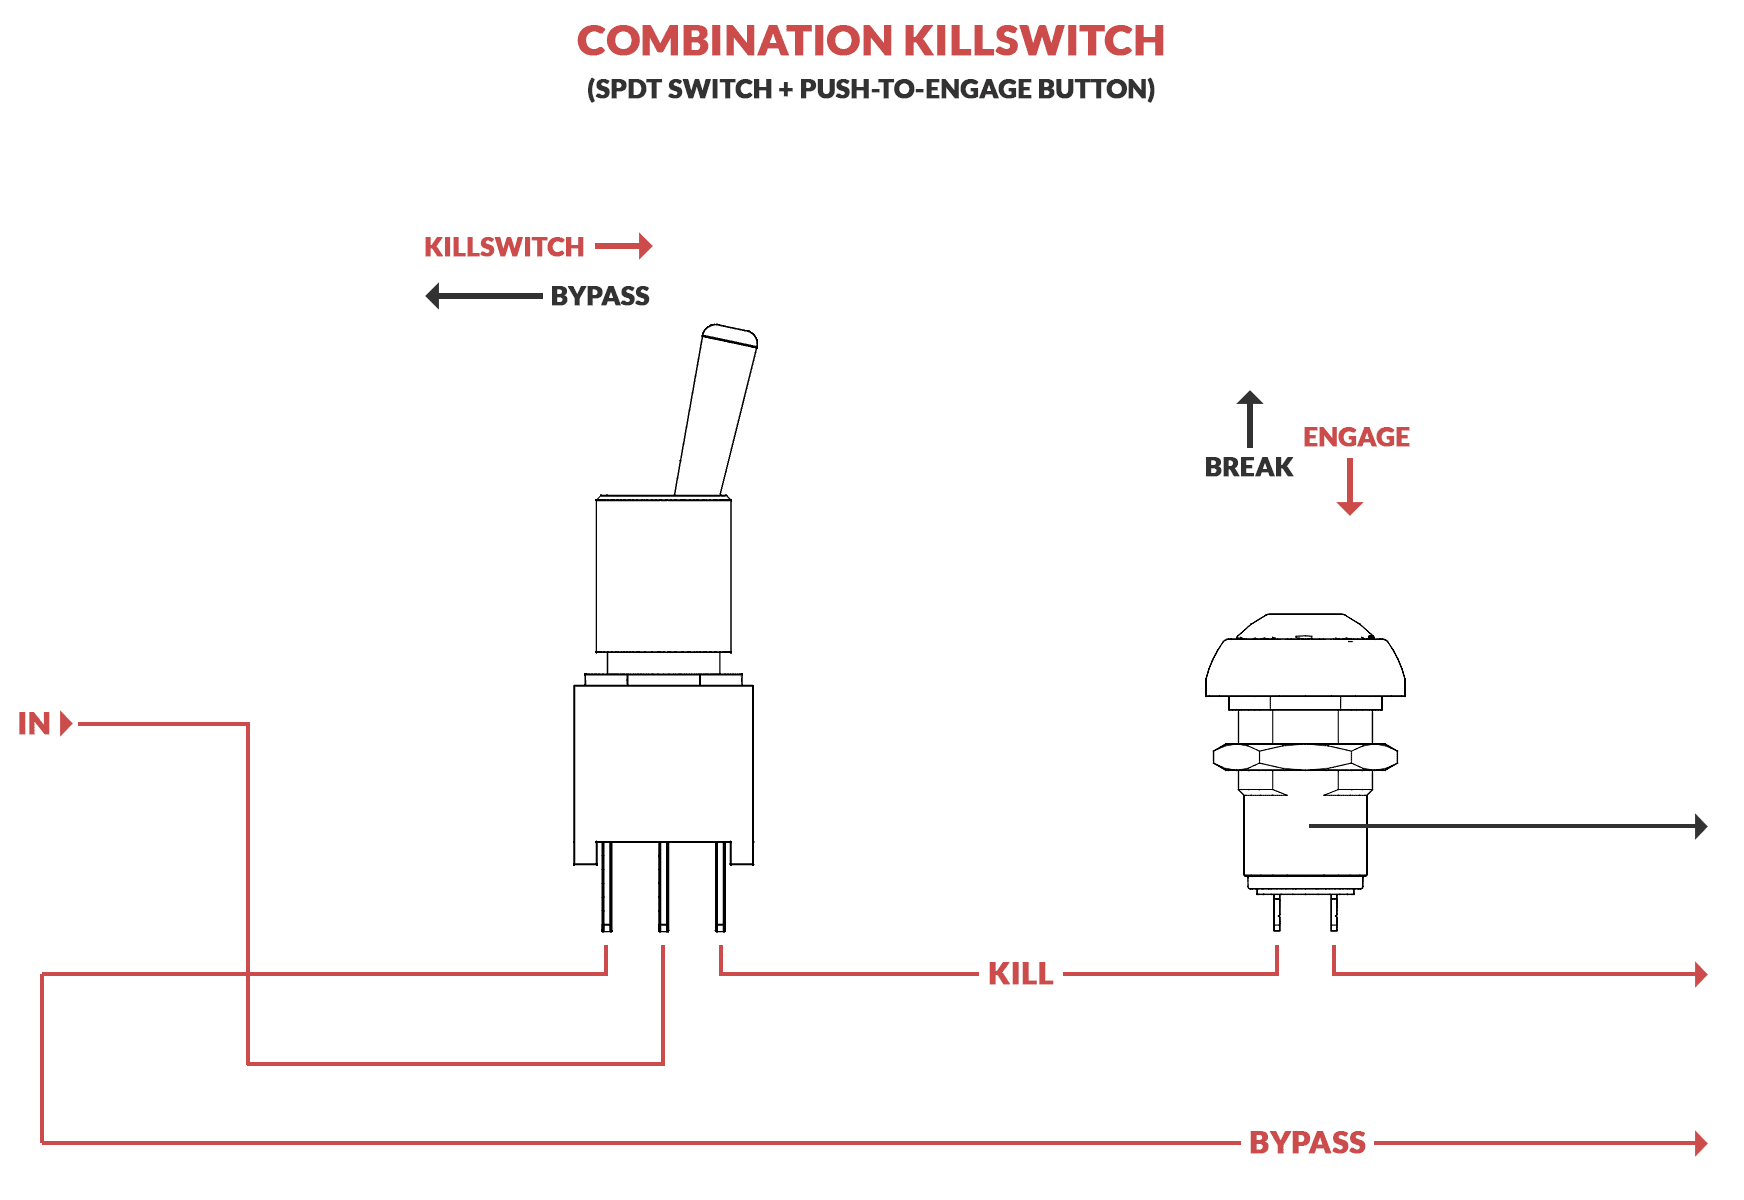 How To Build A Killswitch For Your Guitar Electric Herald Diagram 1 Is The Way Currently Wired Circuit Modification Guitars That Combines An Spdt Switch And No Momentary